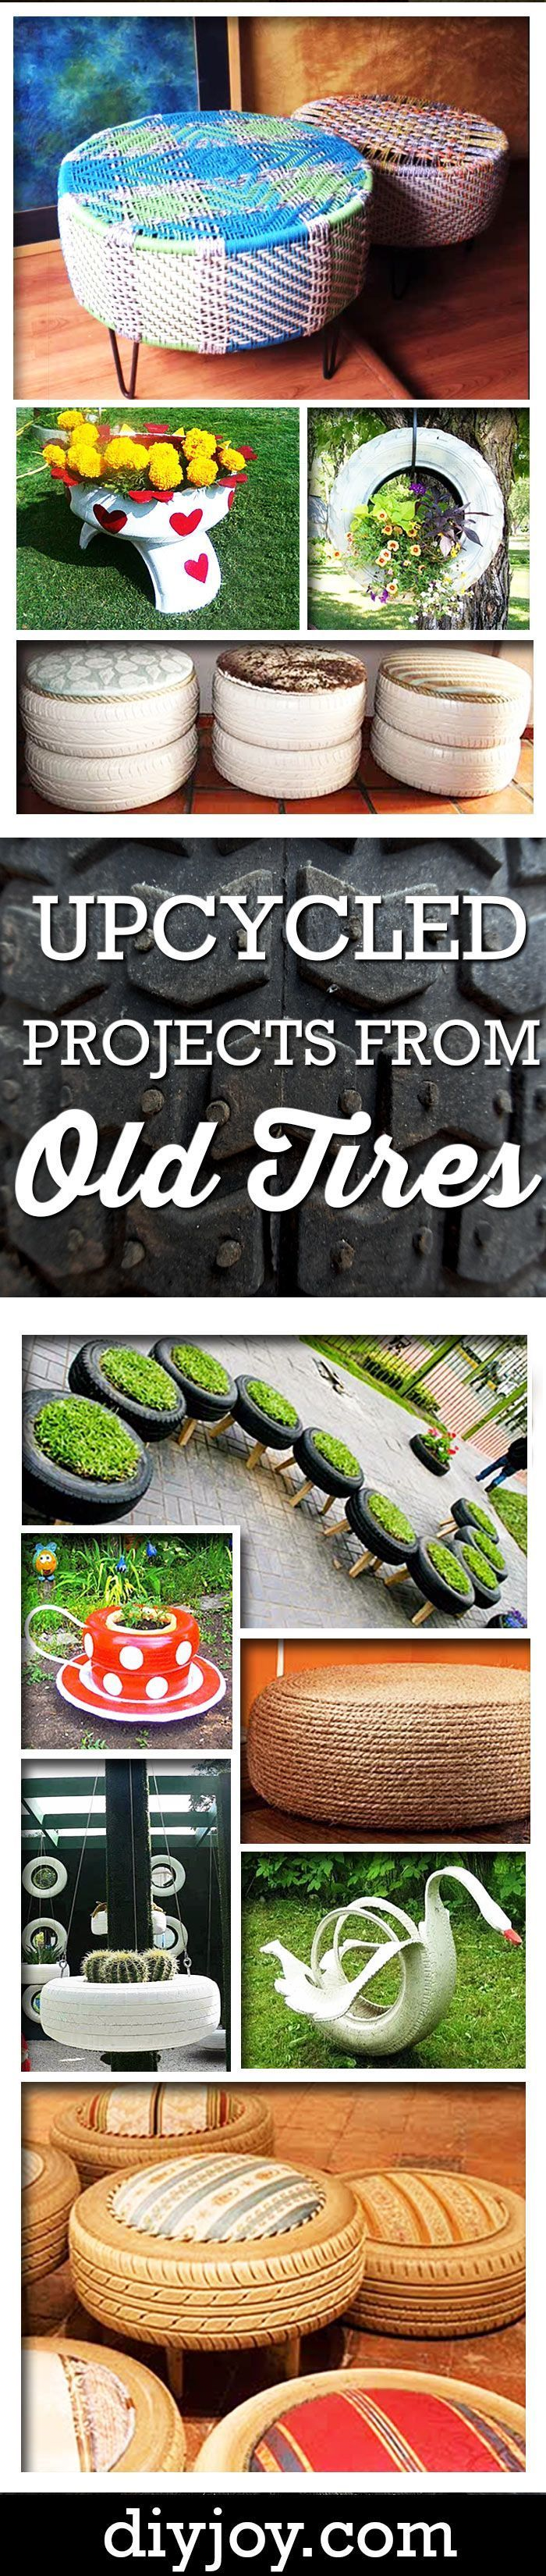 DIY Ideas - upcycling projects made from old tires. Fun crafts ideas and tutorials by diy joy